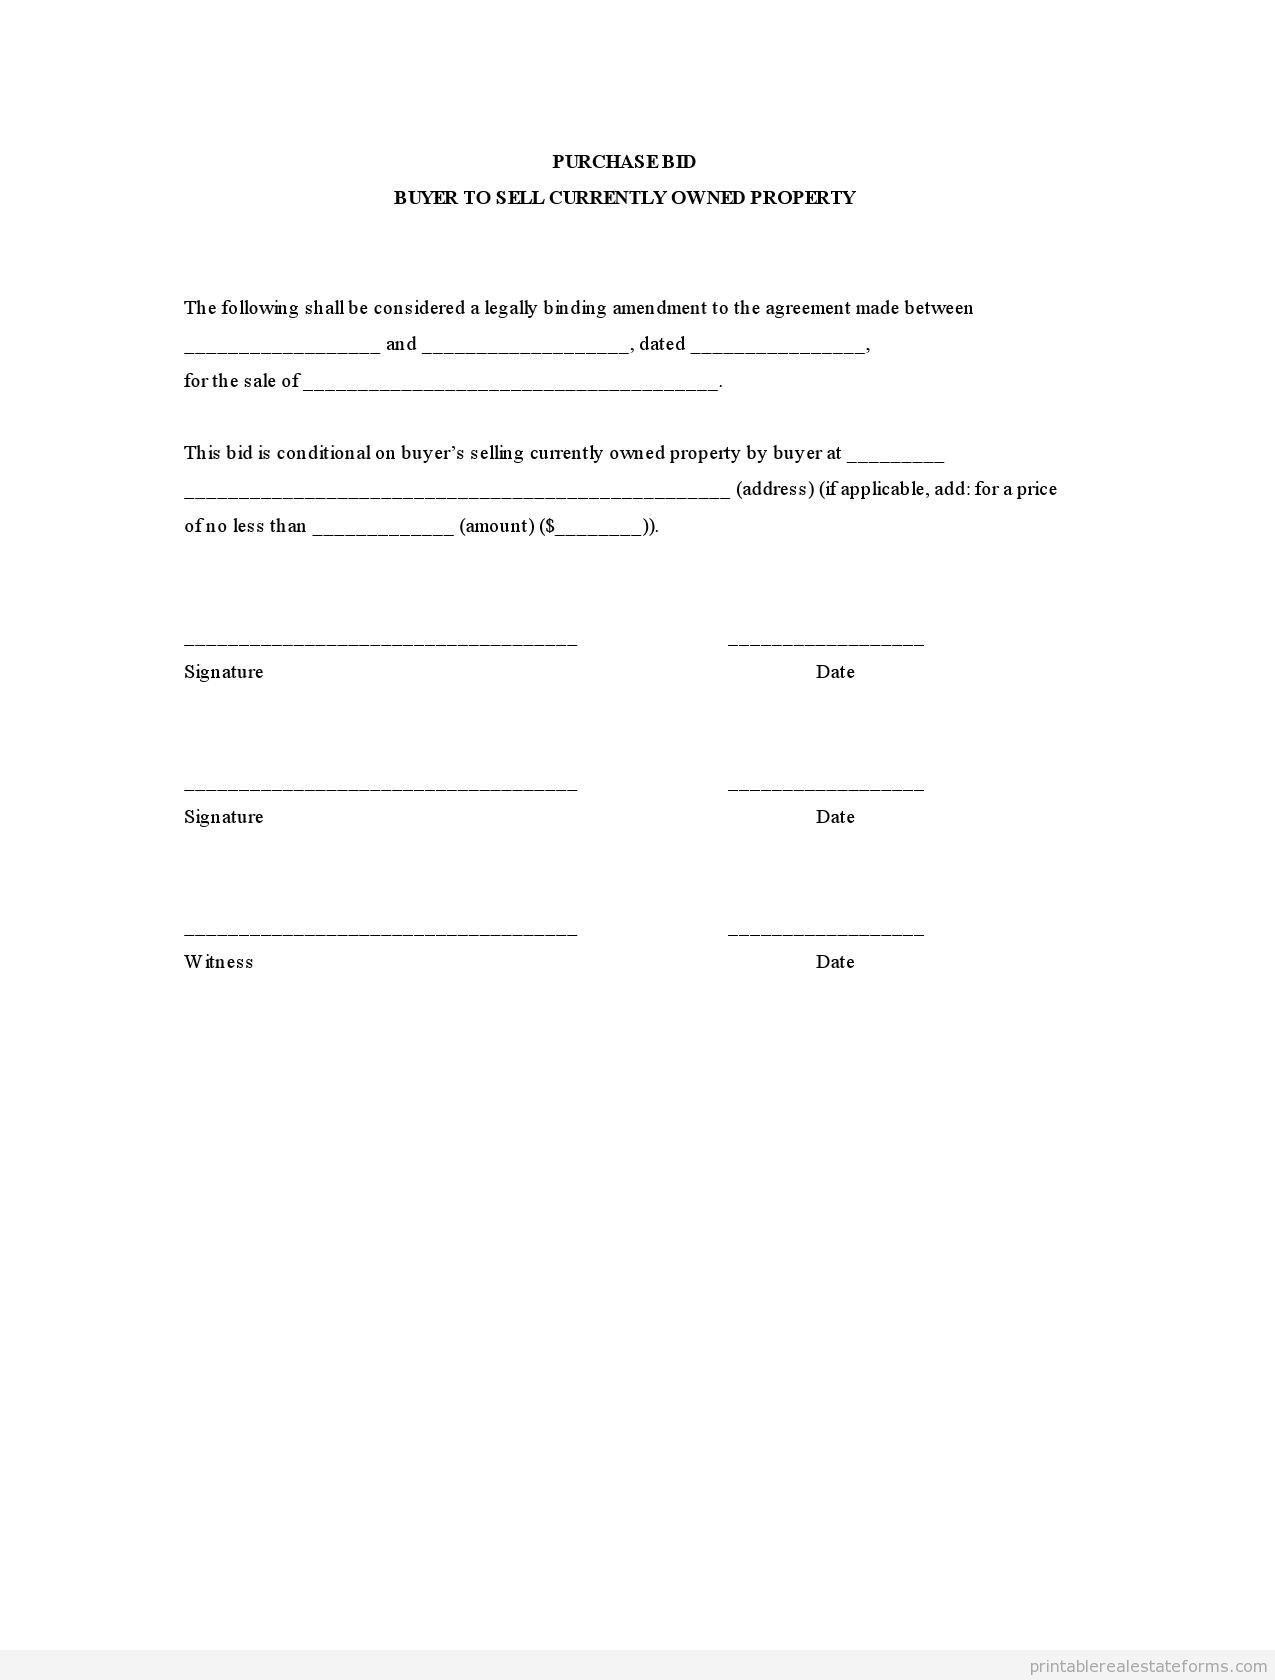 Printable purchase bid buyer to sell currently owned property – Agreement to Purchase Real Estate Form Free